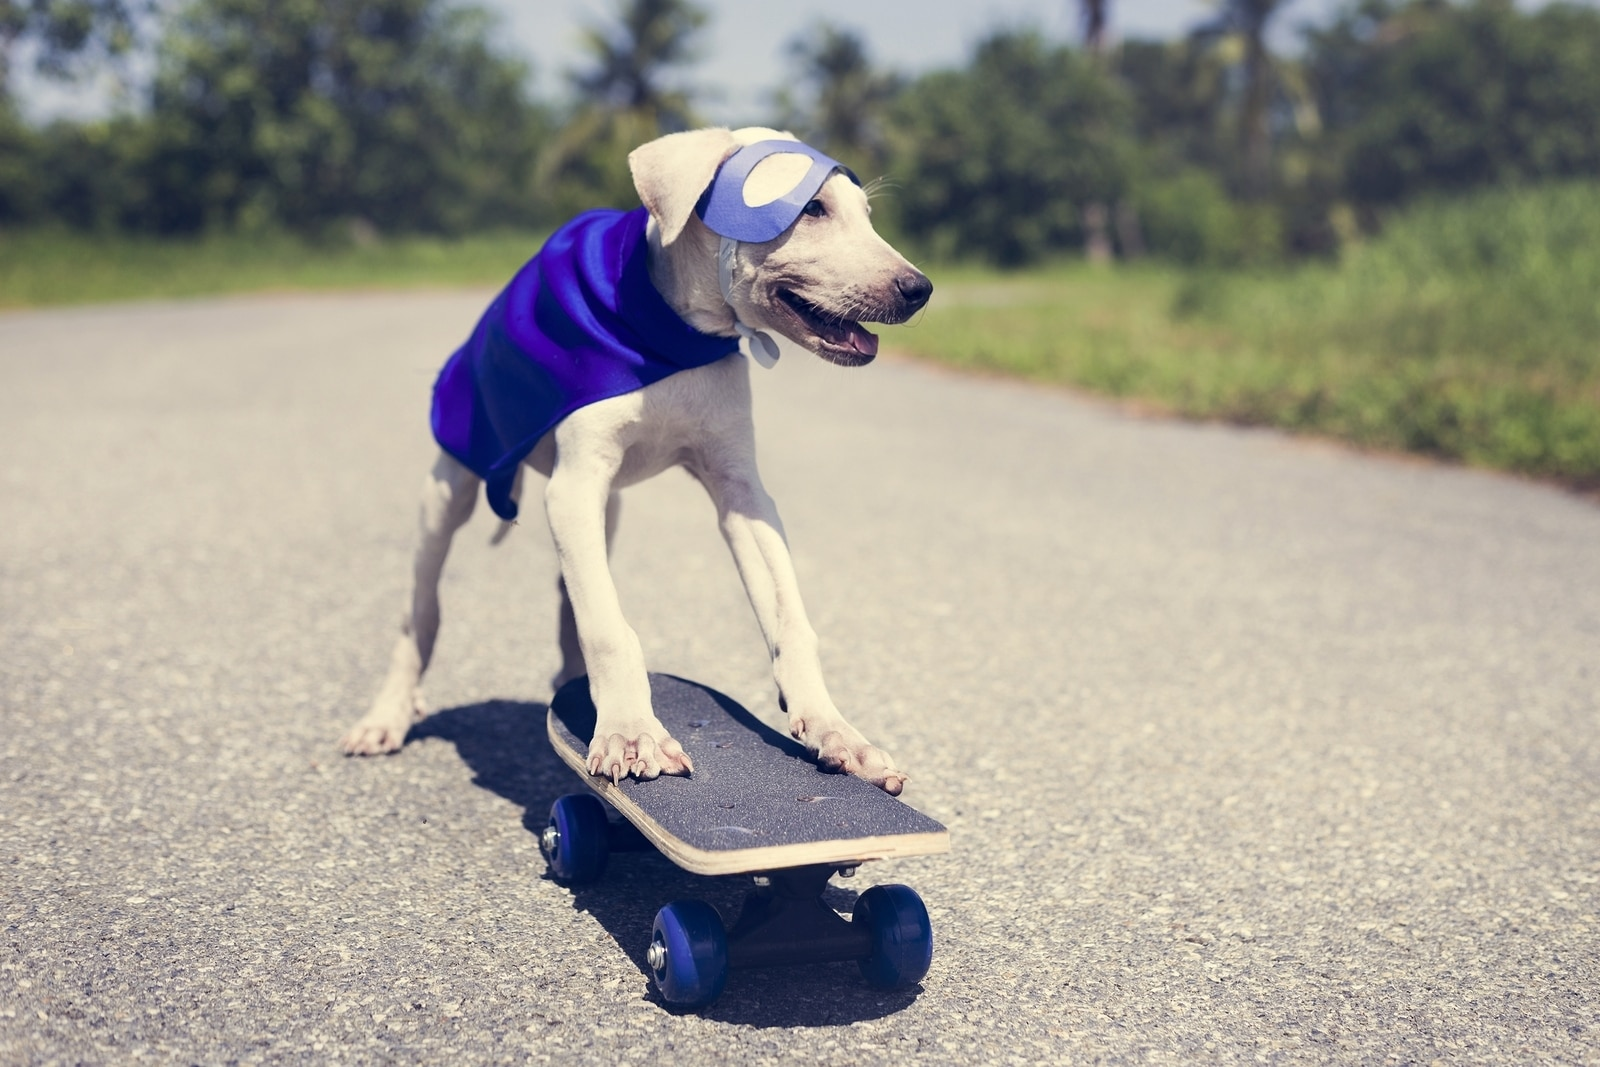 Yellow lab pup, dressed like a superhero with purple cape and mask riding a skateboard.